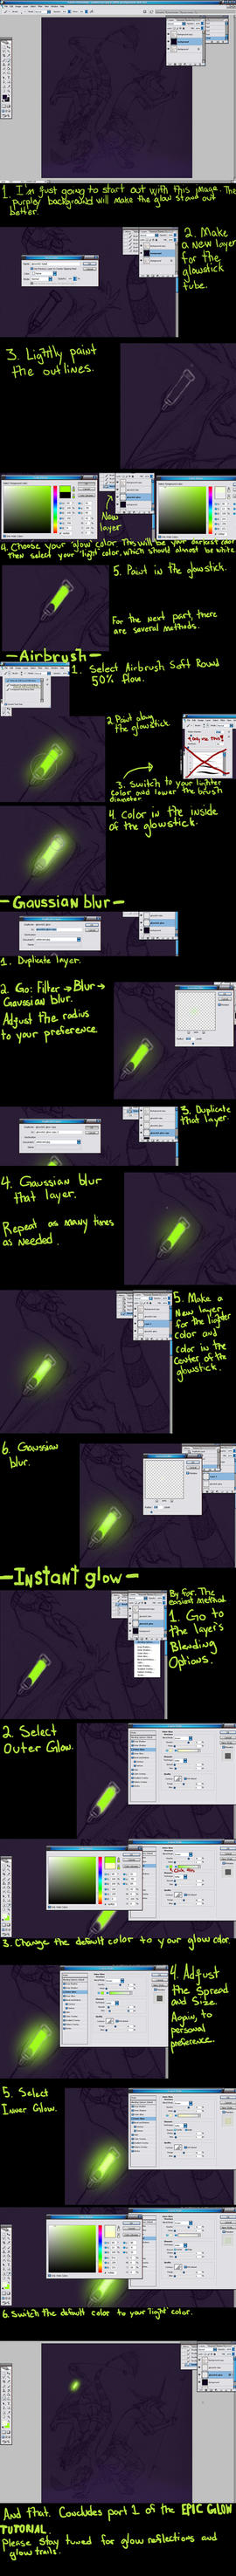 EPIC GLOW TUTORIAL PART 1 by GearOtter